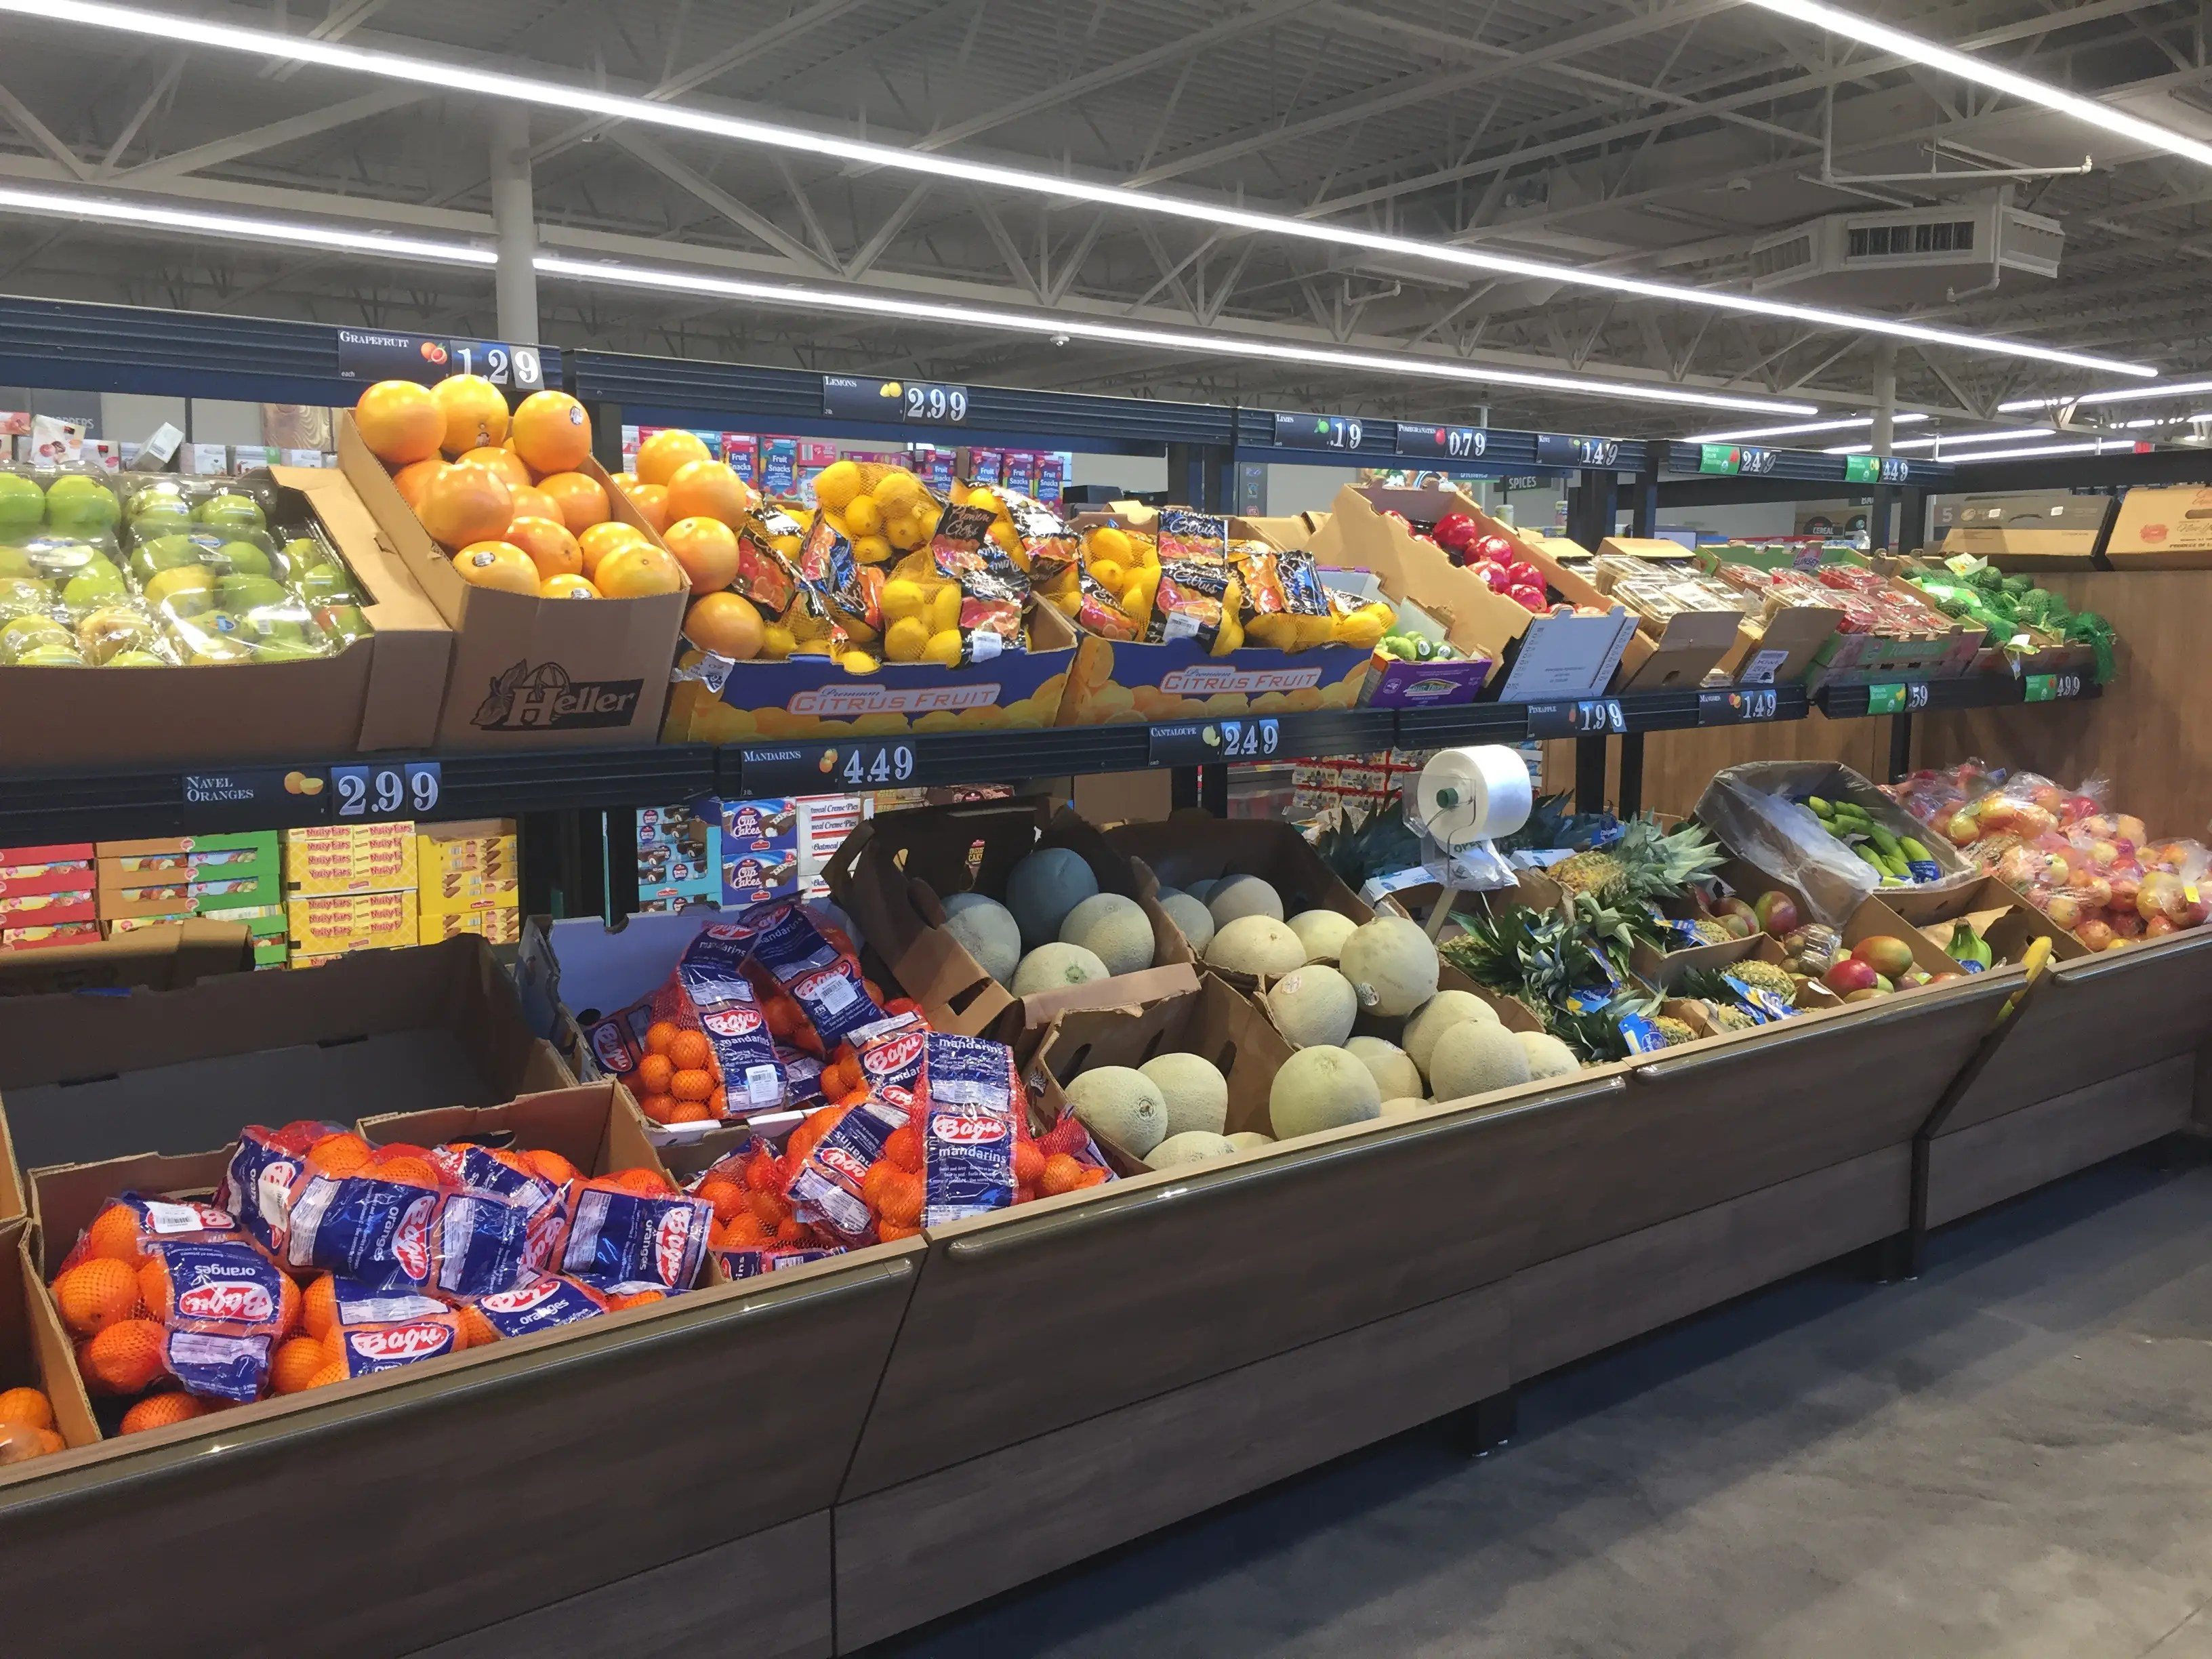 Like in other stores, most of the produce is sold in bulk packaging.